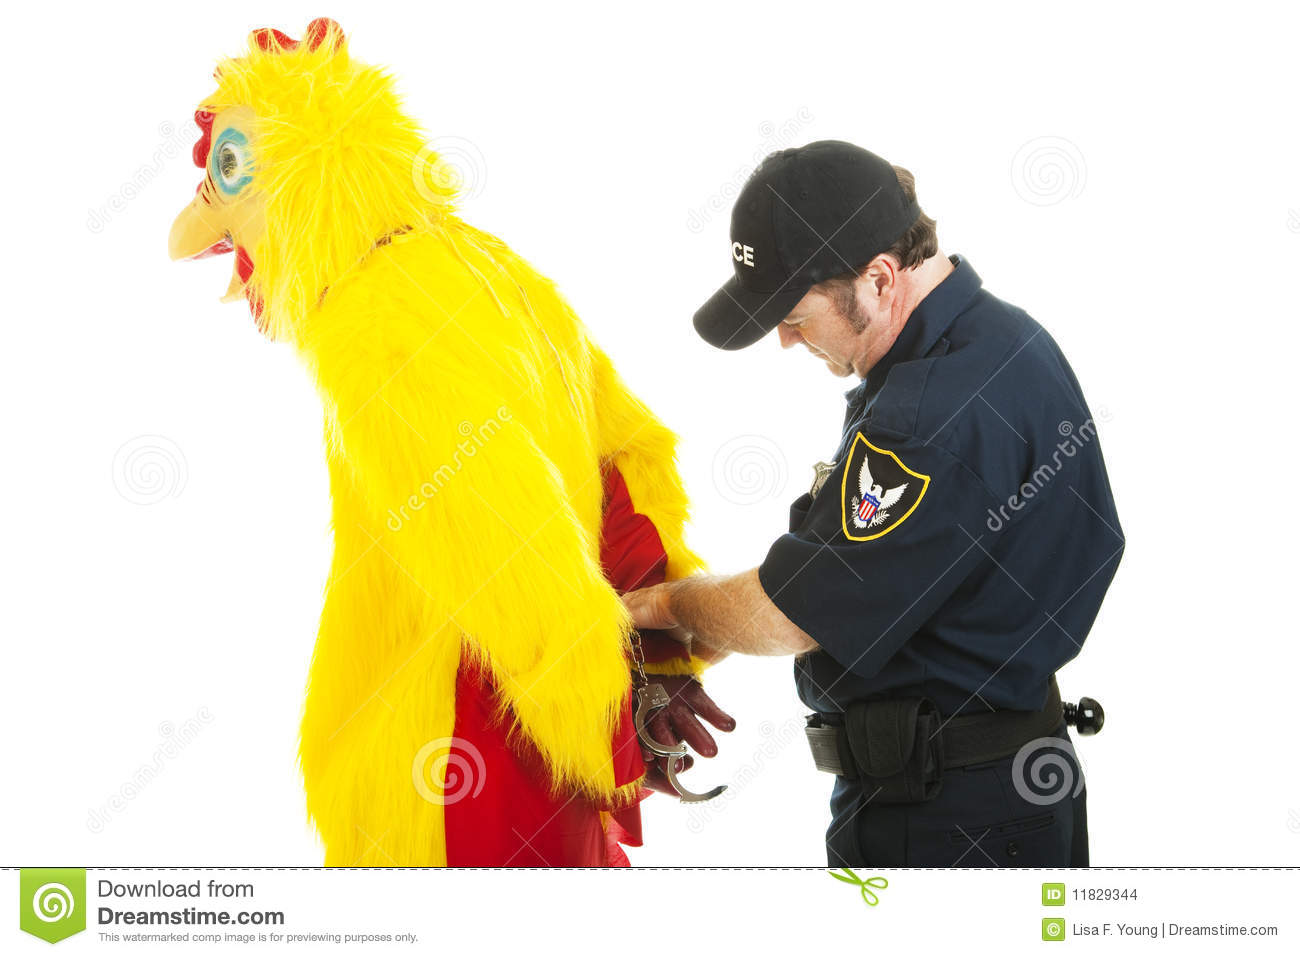 Chicken man being handcuffed by a police officer. Isolated on white.